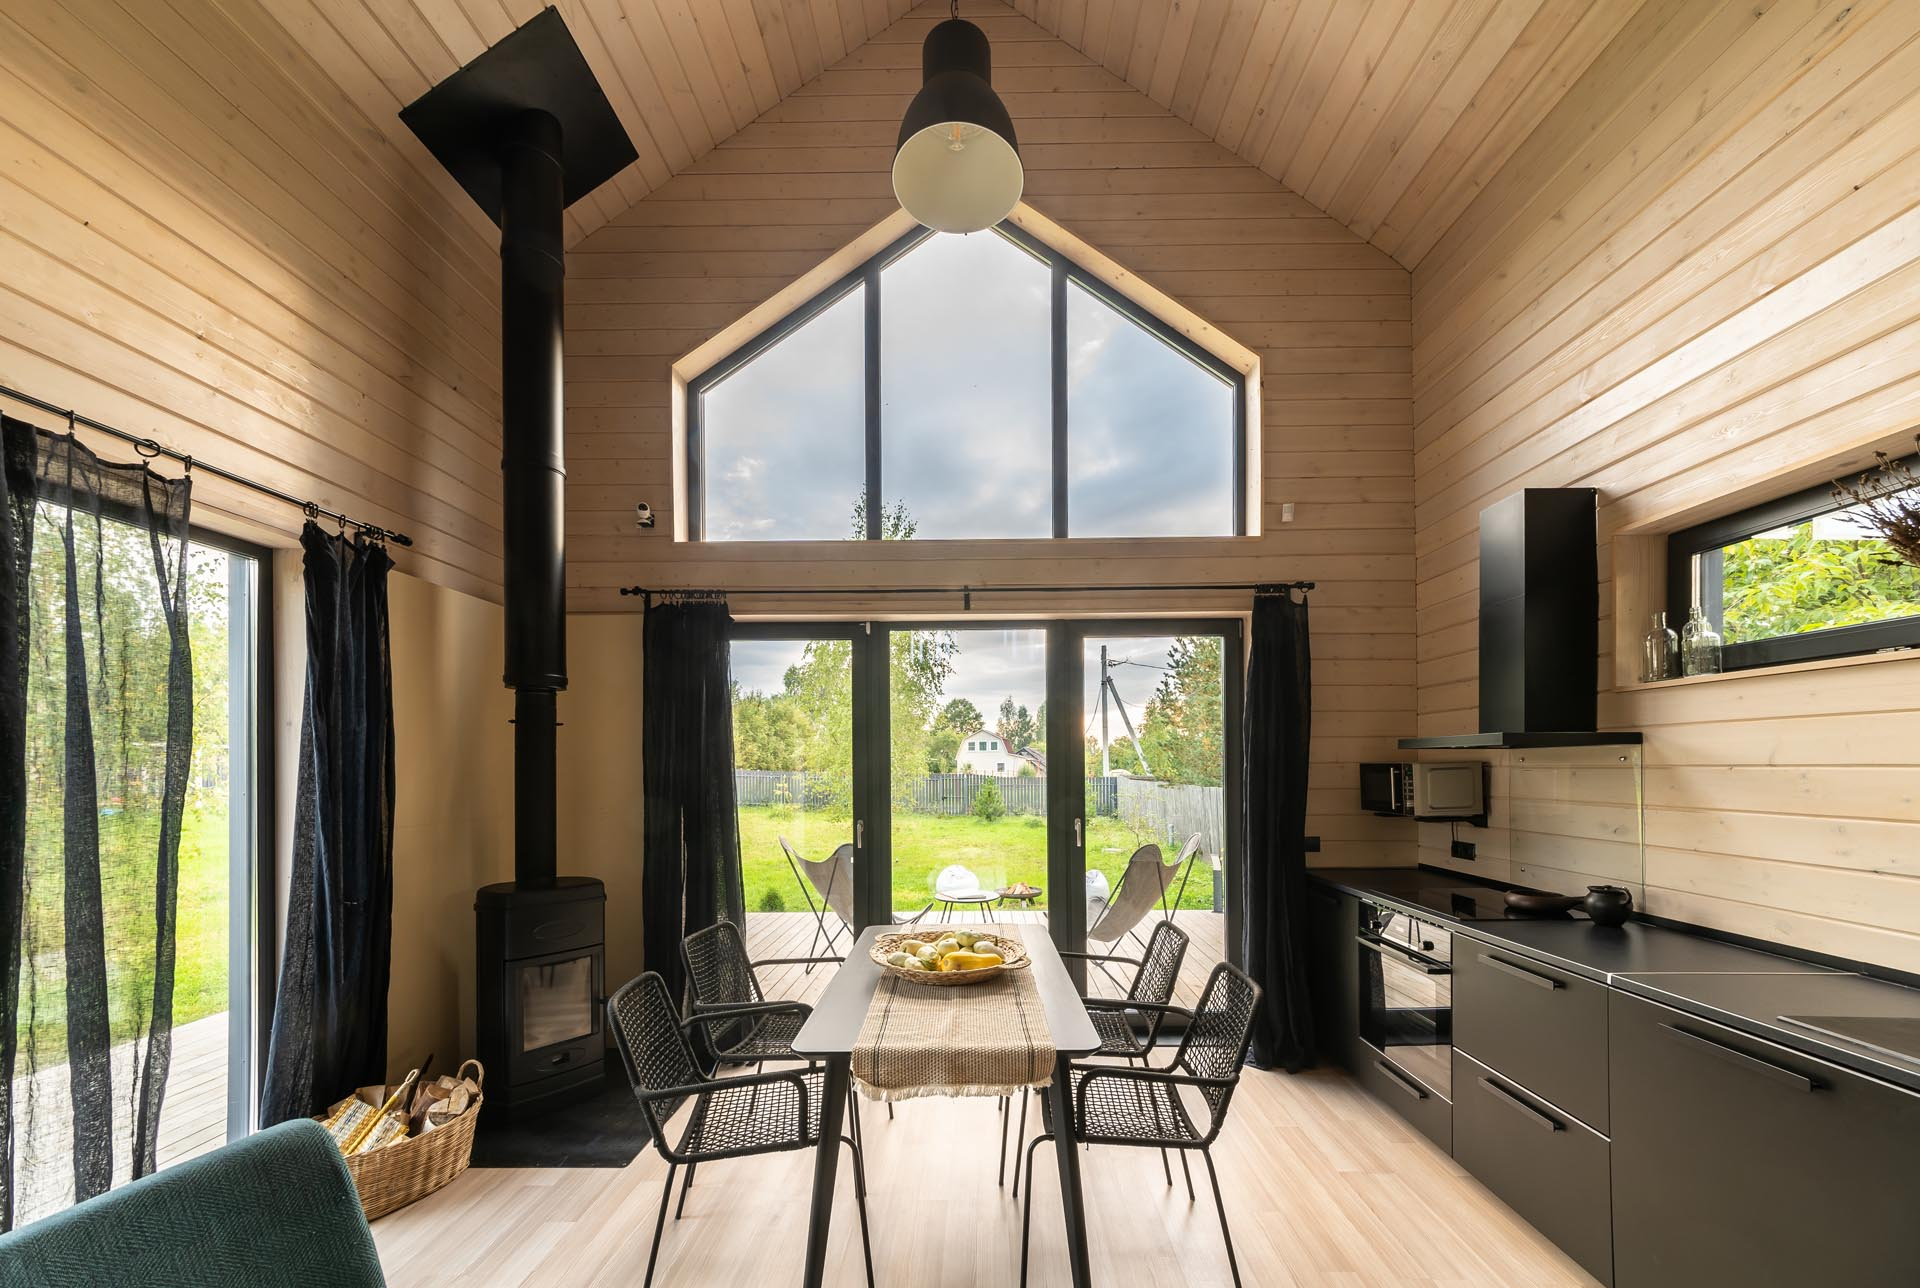 A modern barn-inspired open plan dining area and kitchen with tongue and groove wood siding and black accents, like the kitchen cabinets, the fireplace, the curtains, and furniture.